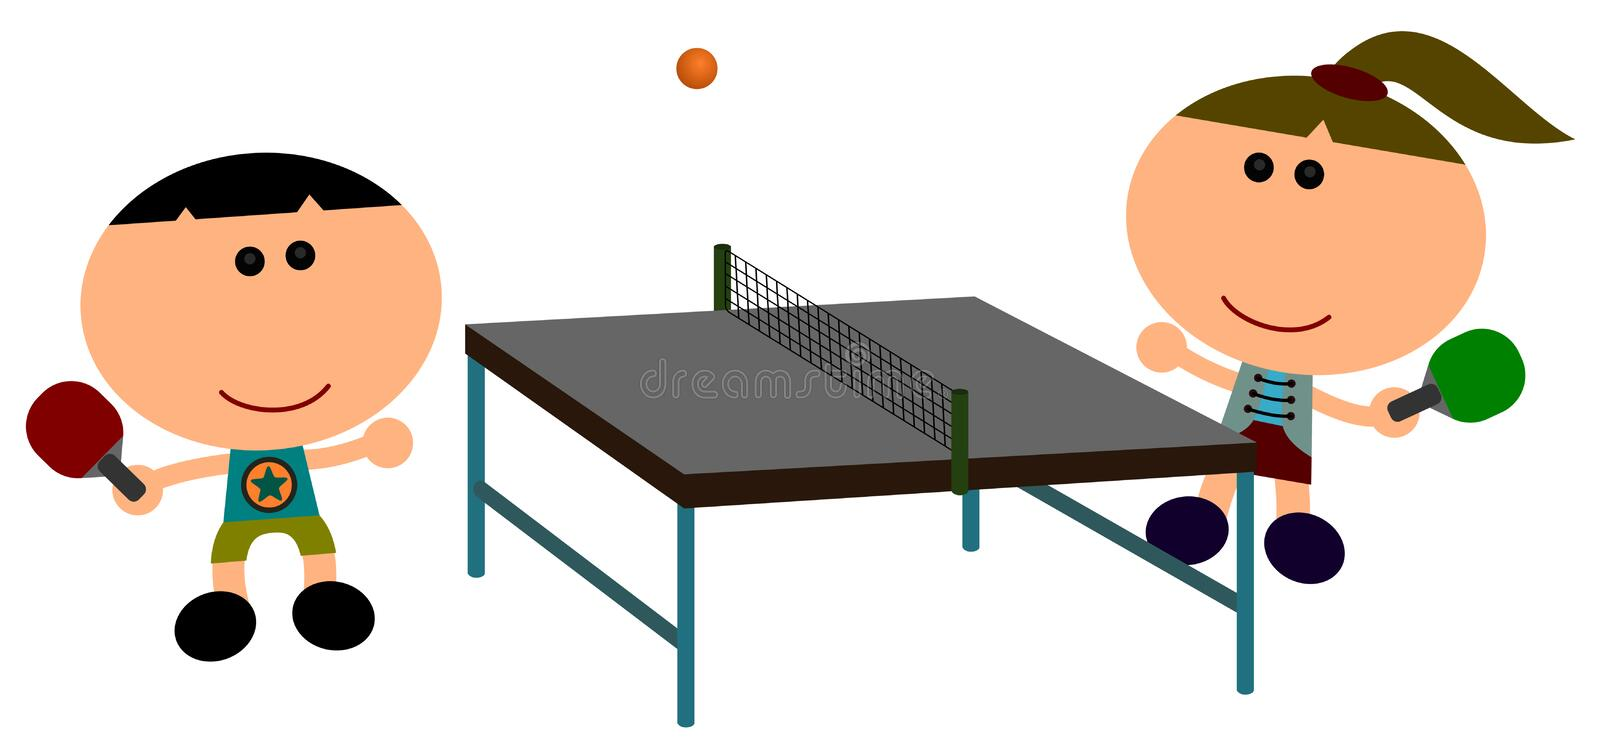 Table tennis. Illustration of two cartoon characters happily plays table tennis vector illustration